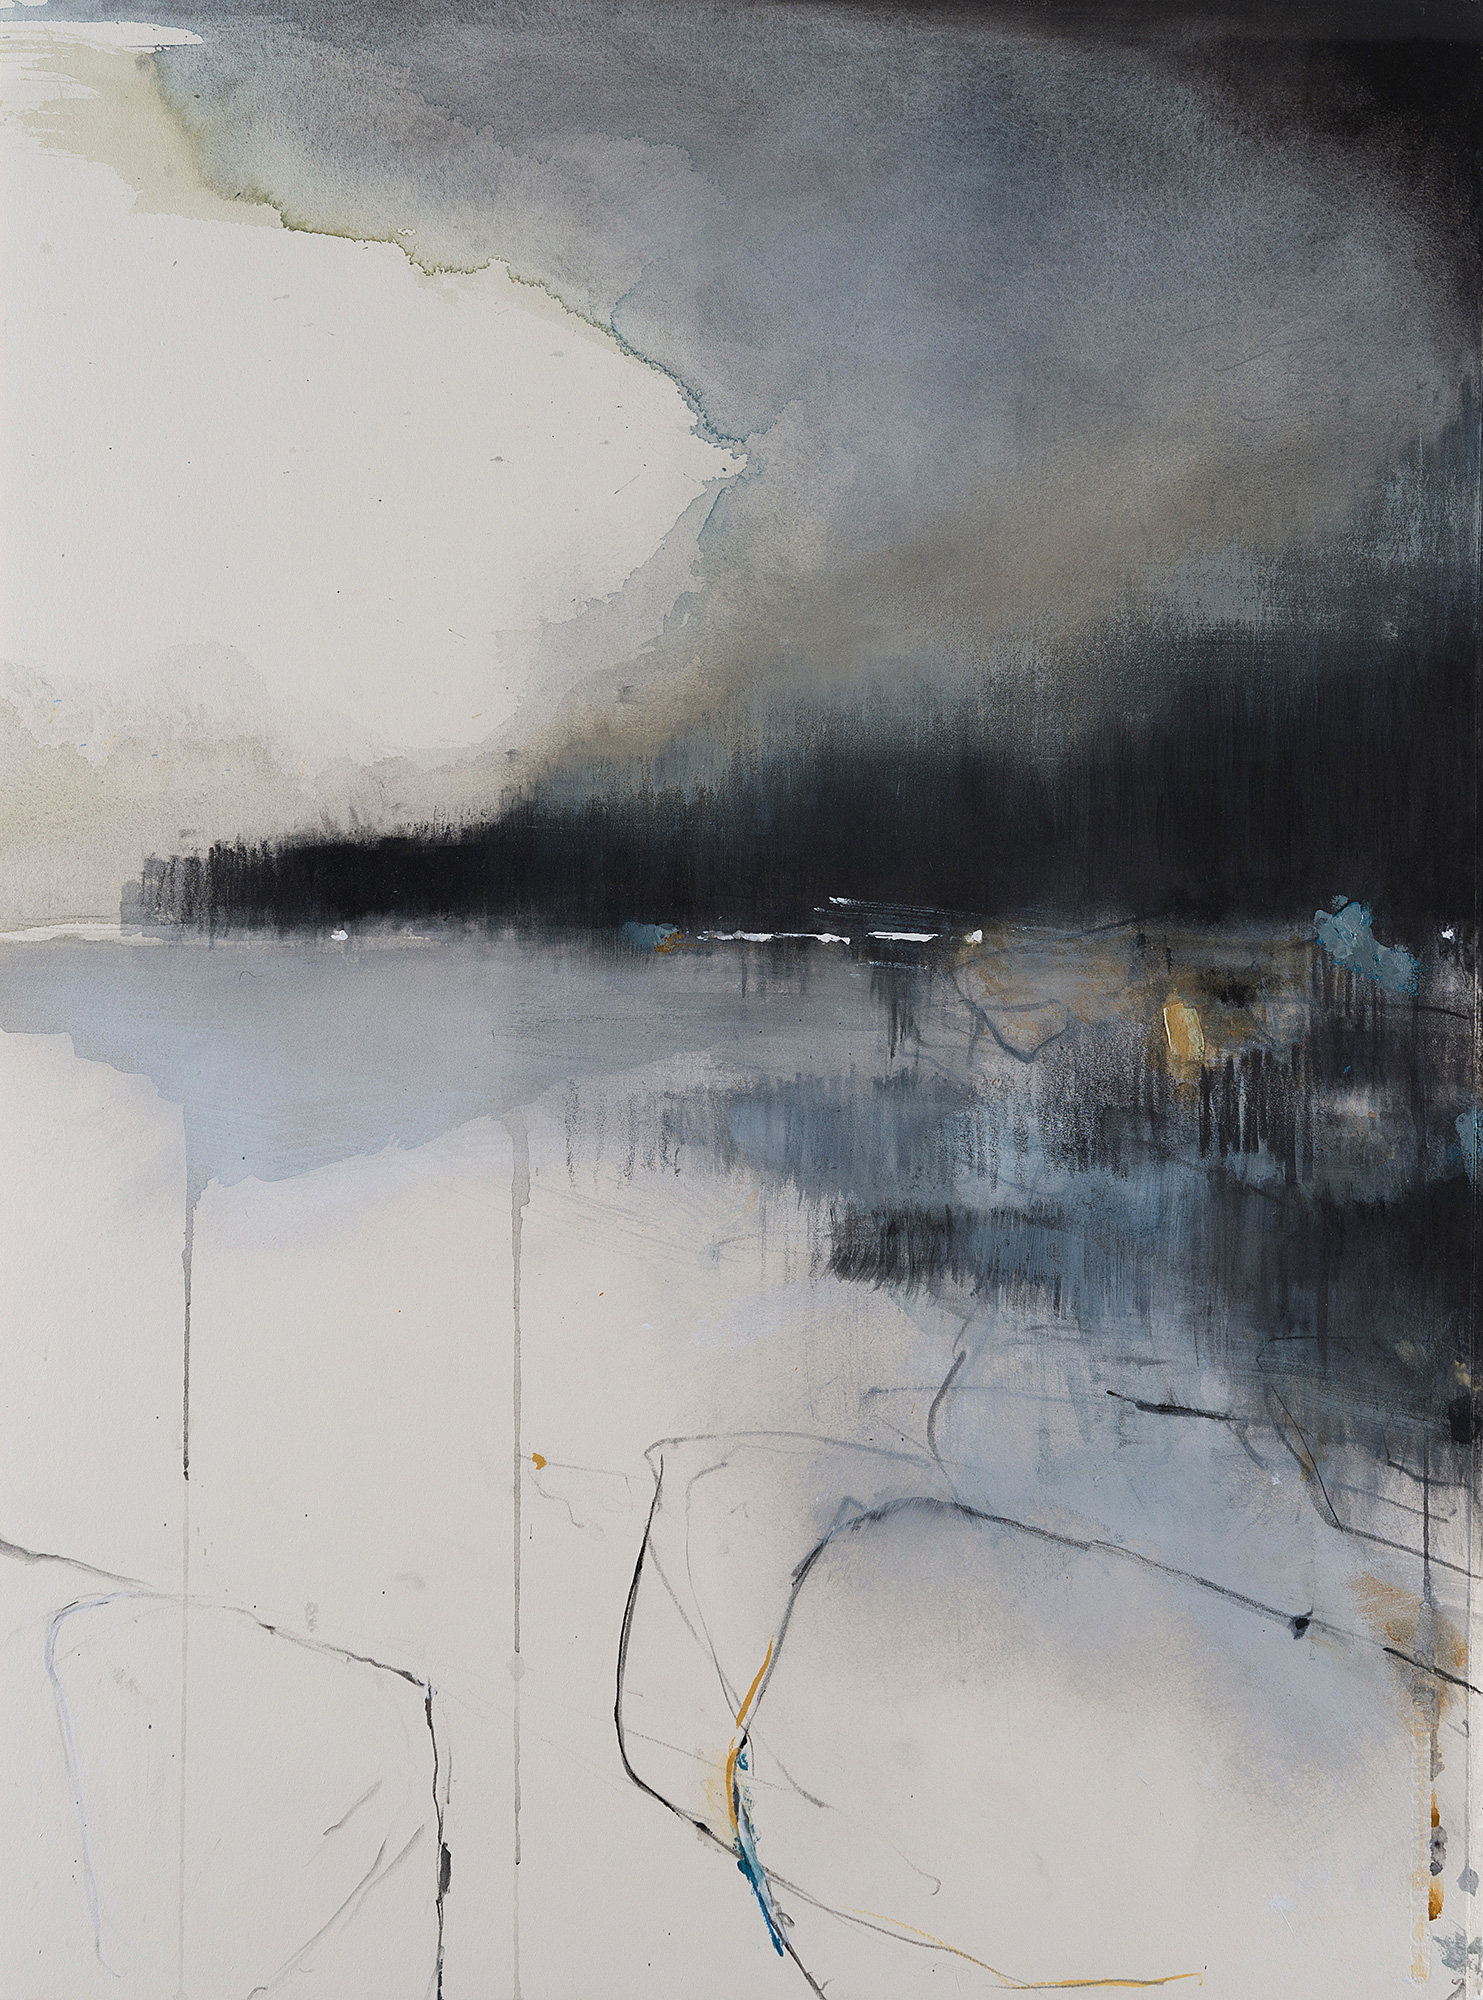 Early Autumn Mists on the Headland. Mixed media on paper 77 x 57cm  Sold